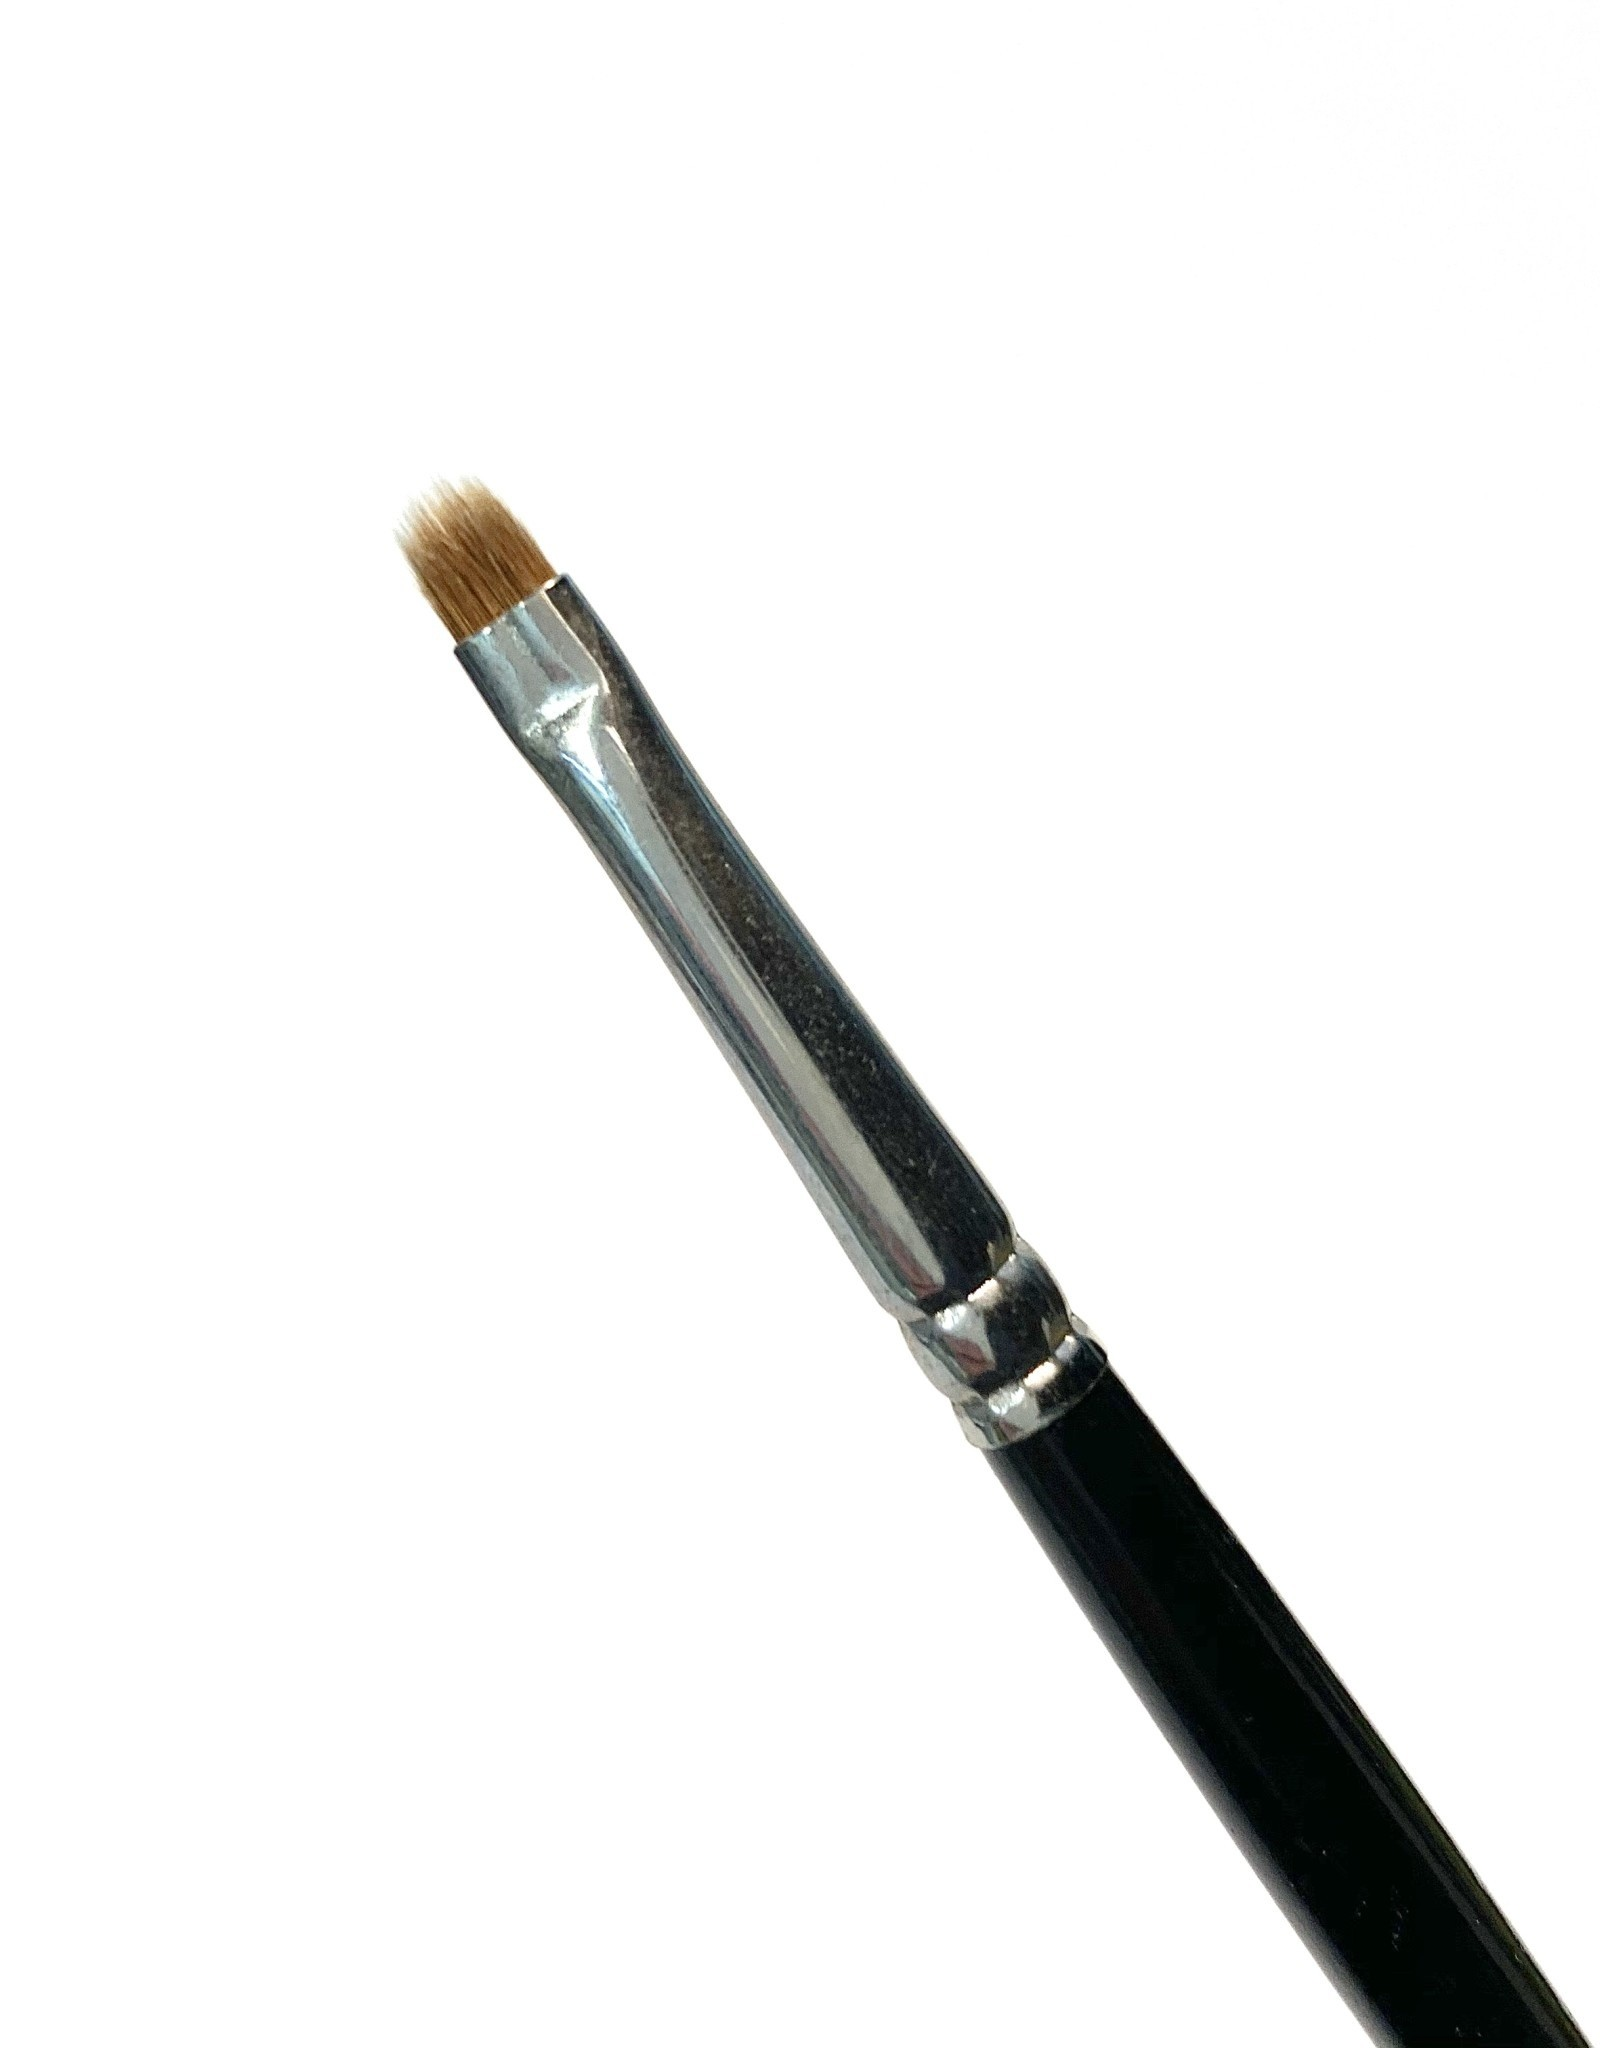 Paragon Pia Supreme Sable Brush, Filbert, 9915 #2